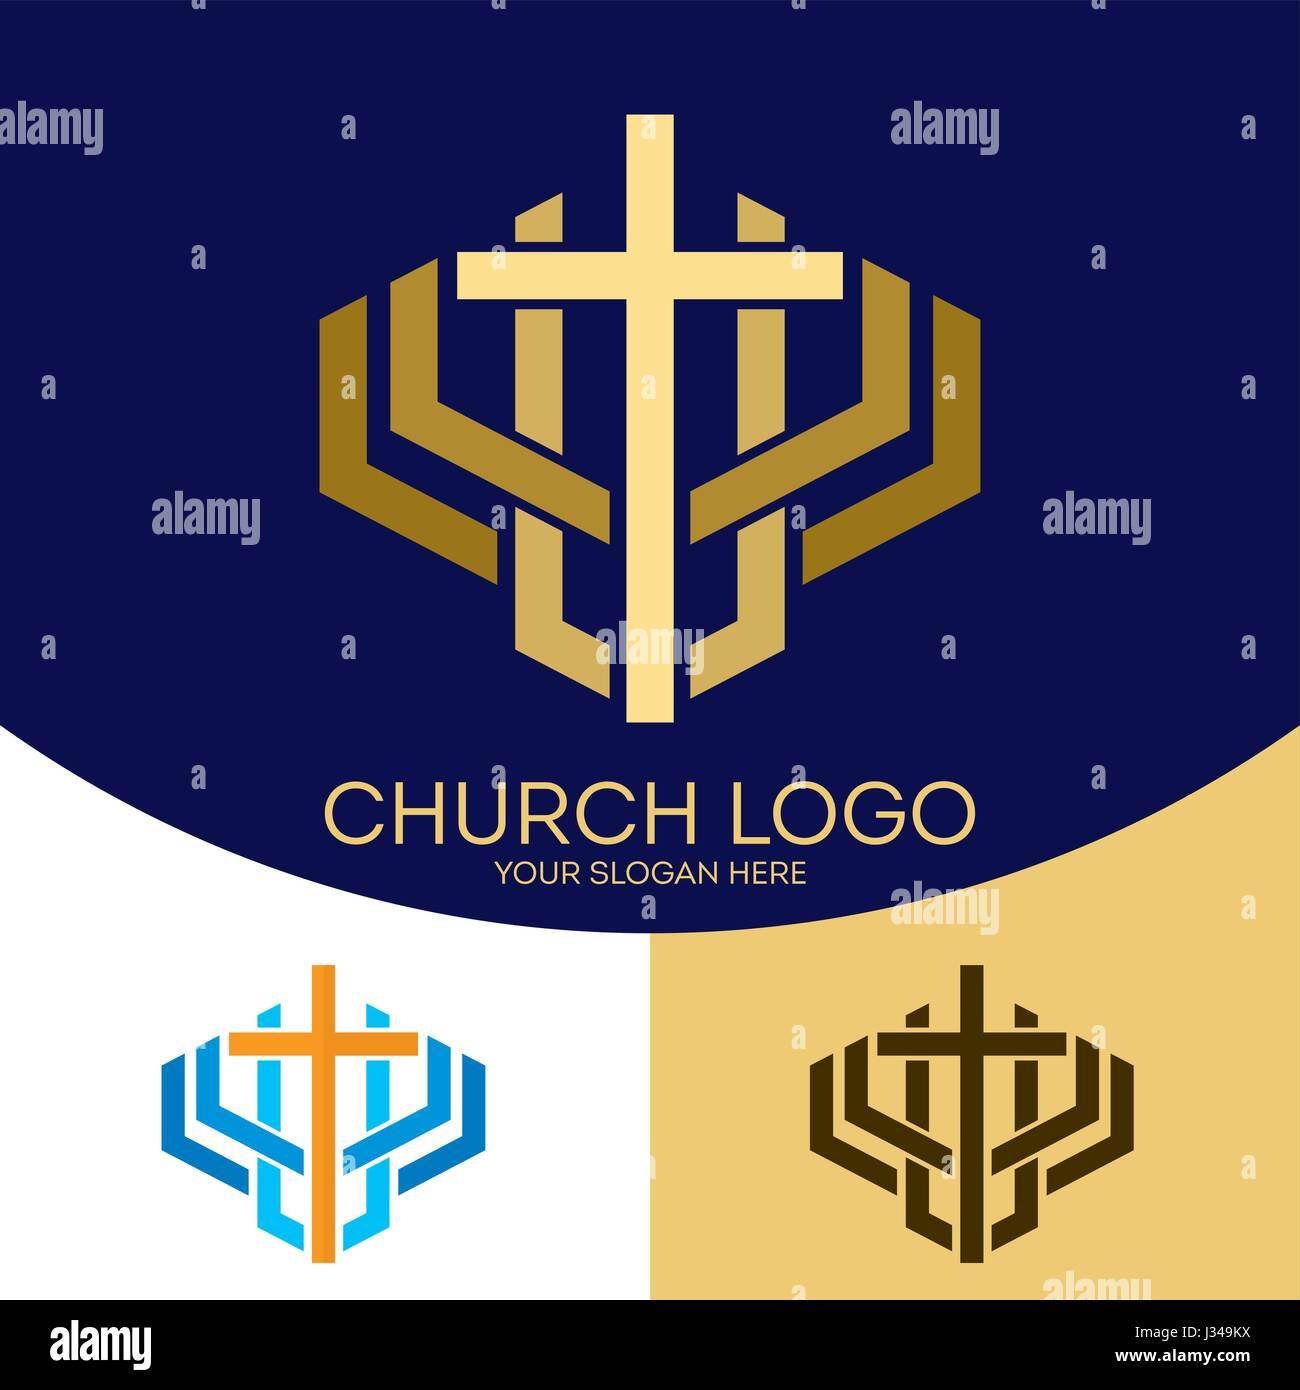 Church logo christian symbols the cross of jesus christ a symbol church logo christian symbols the cross of jesus christ a symbol of death and resurrection of the lord buycottarizona Image collections